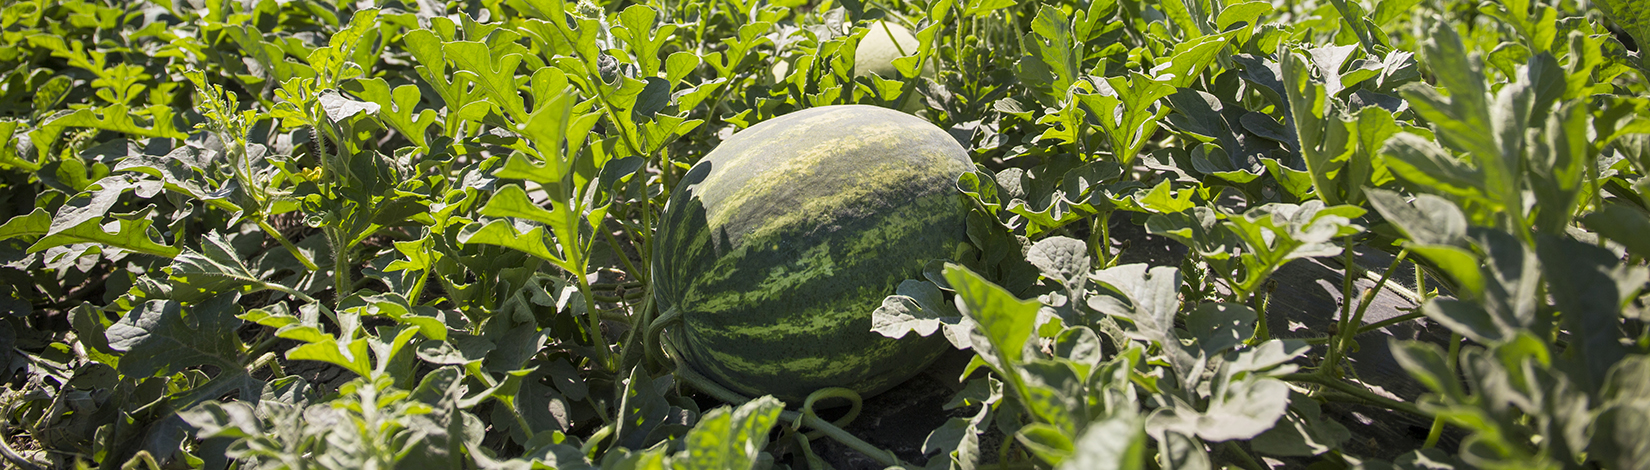 picture of a watermelon in a field